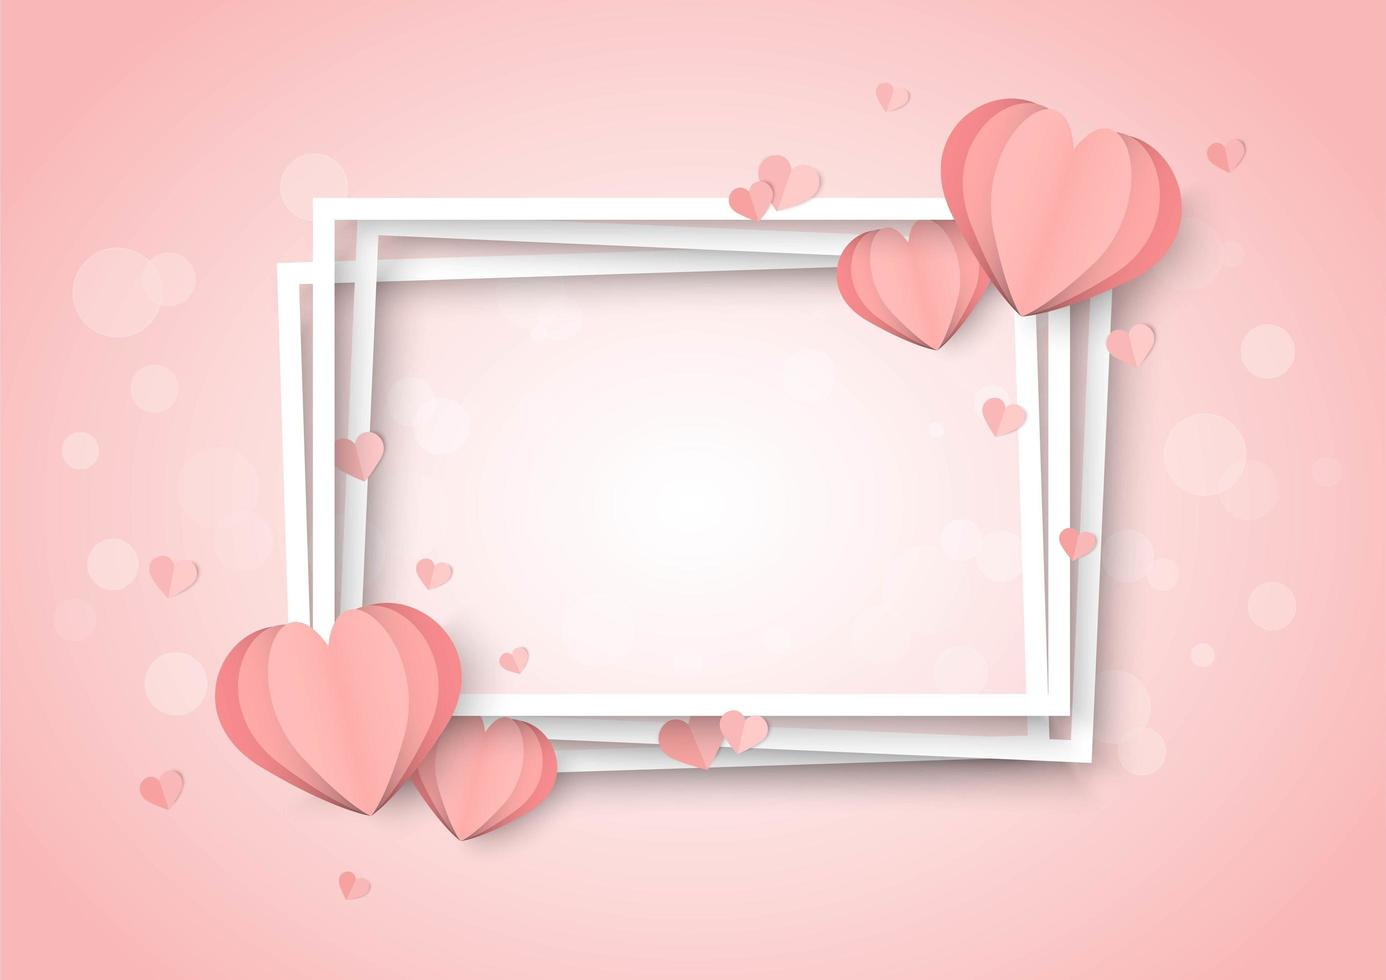 Valentines day pink background with heart shapes and stacked white frames